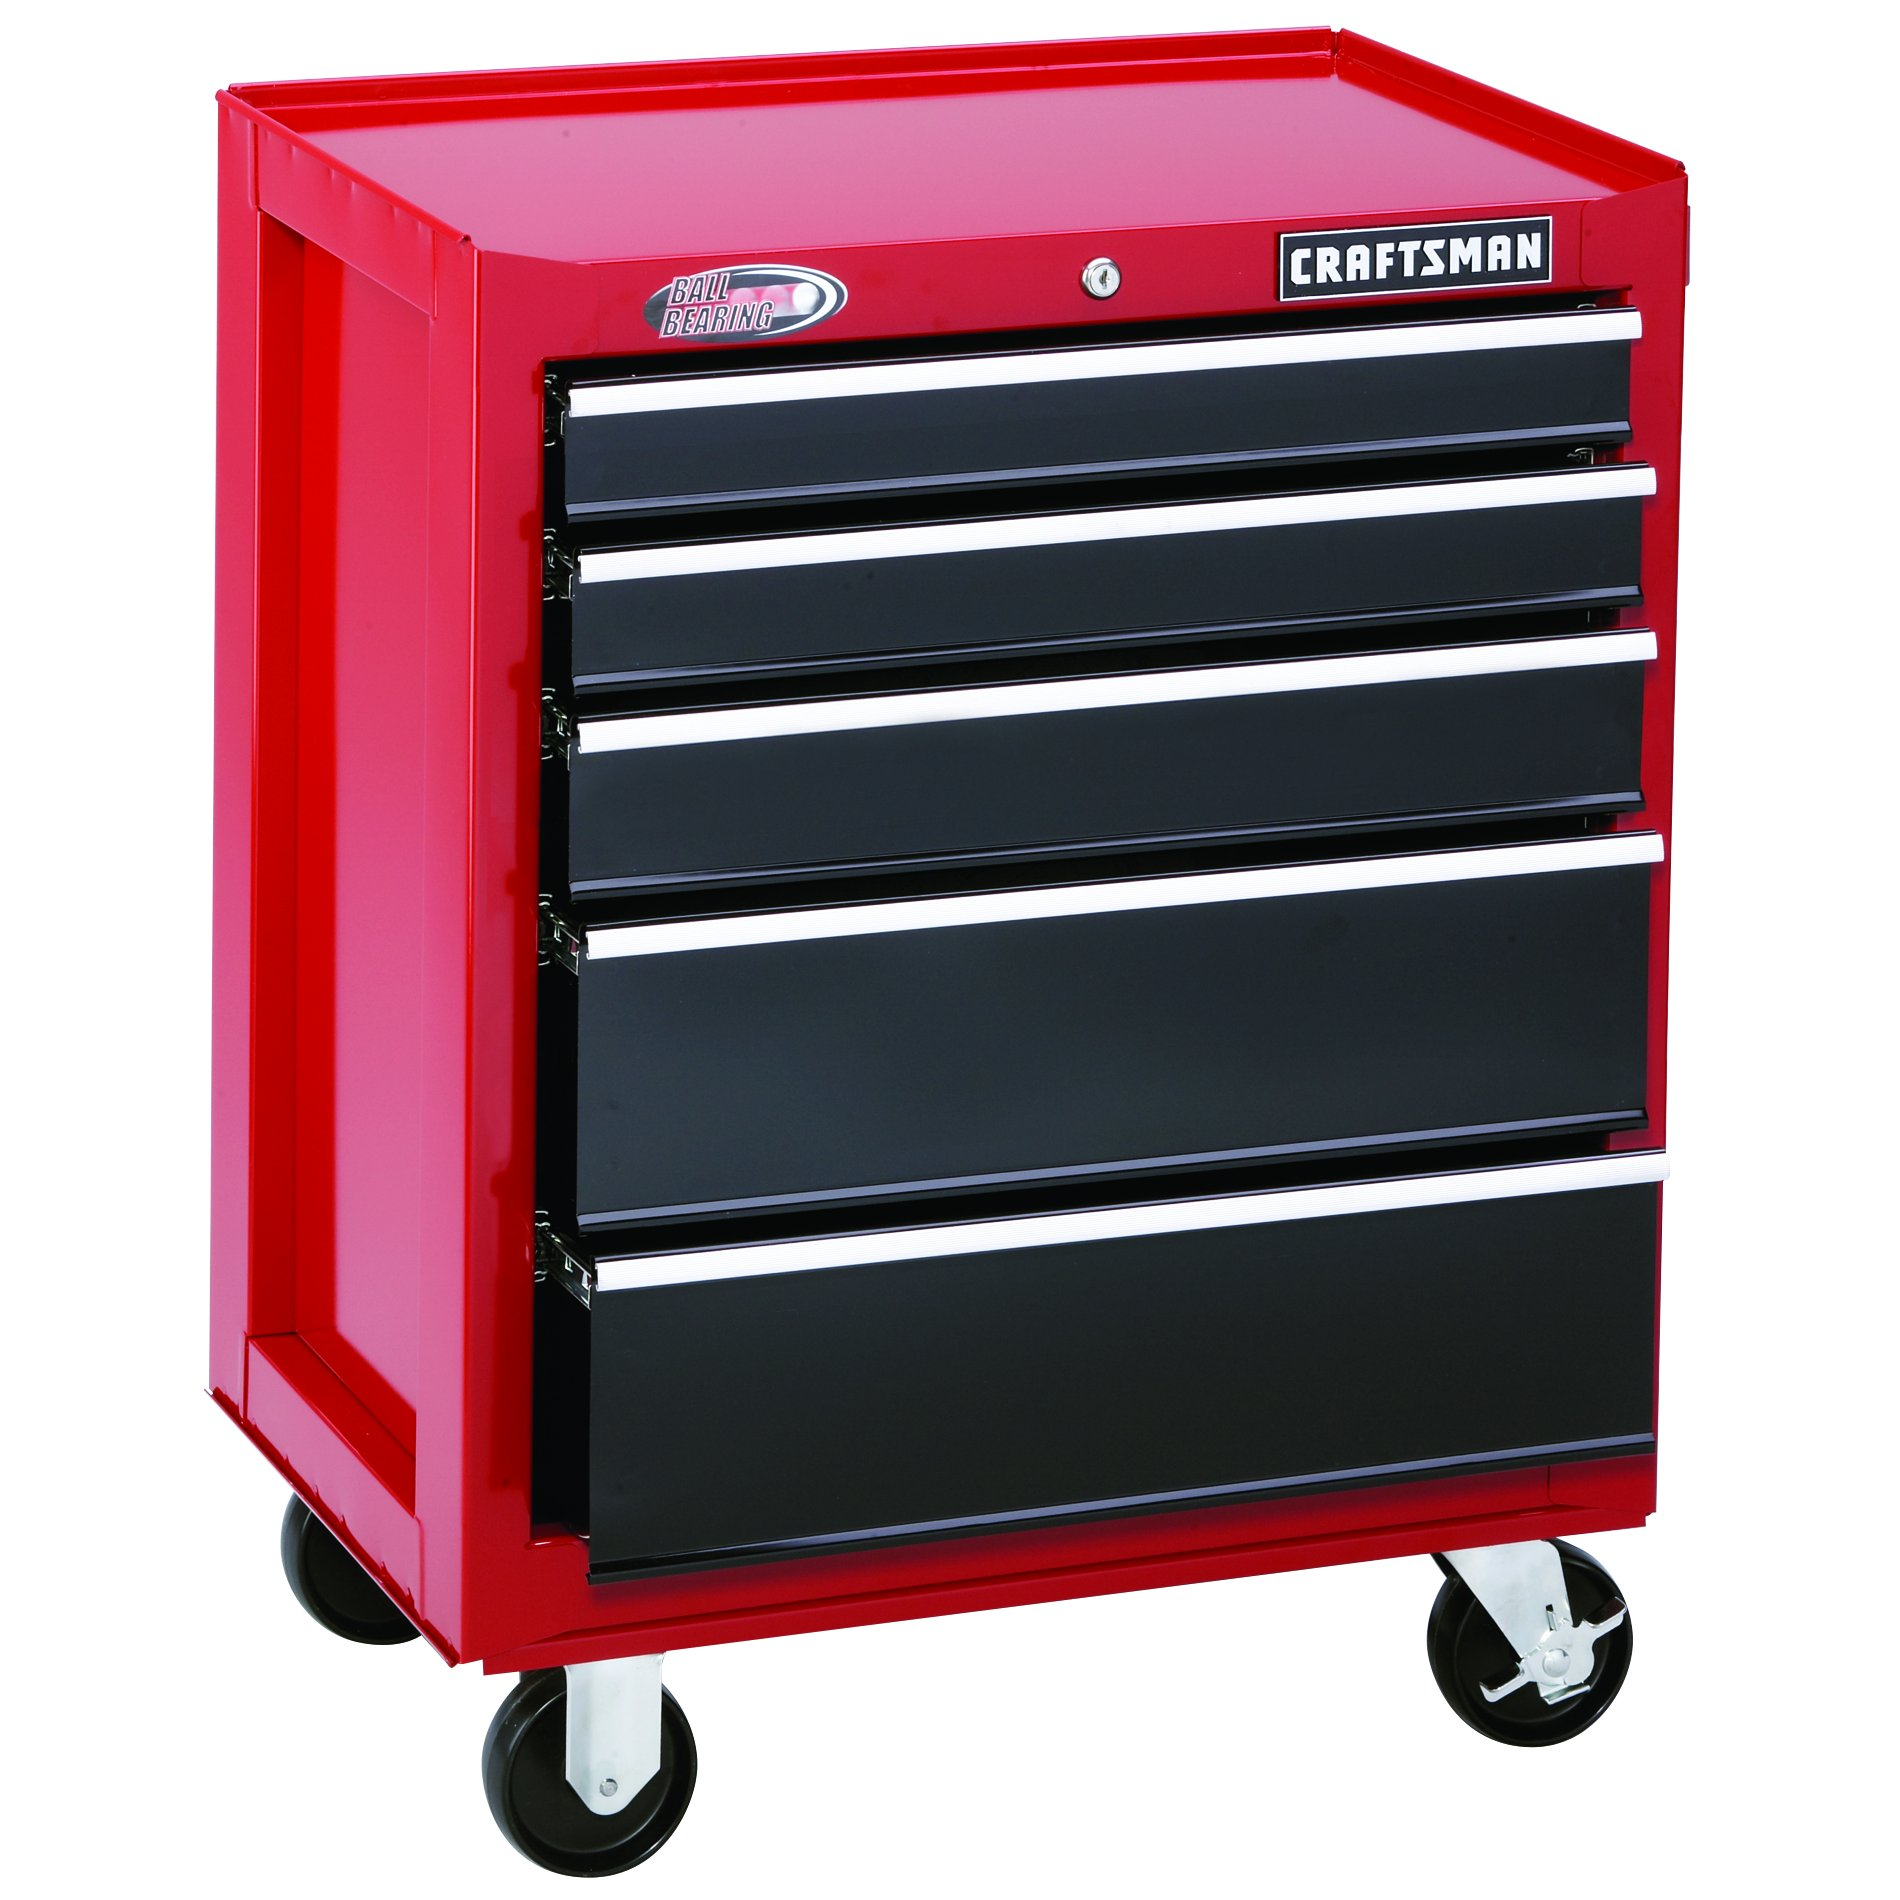 26-Wide-5-Drawer-Ball-Bearing-Bottom-Chest-Red-Black